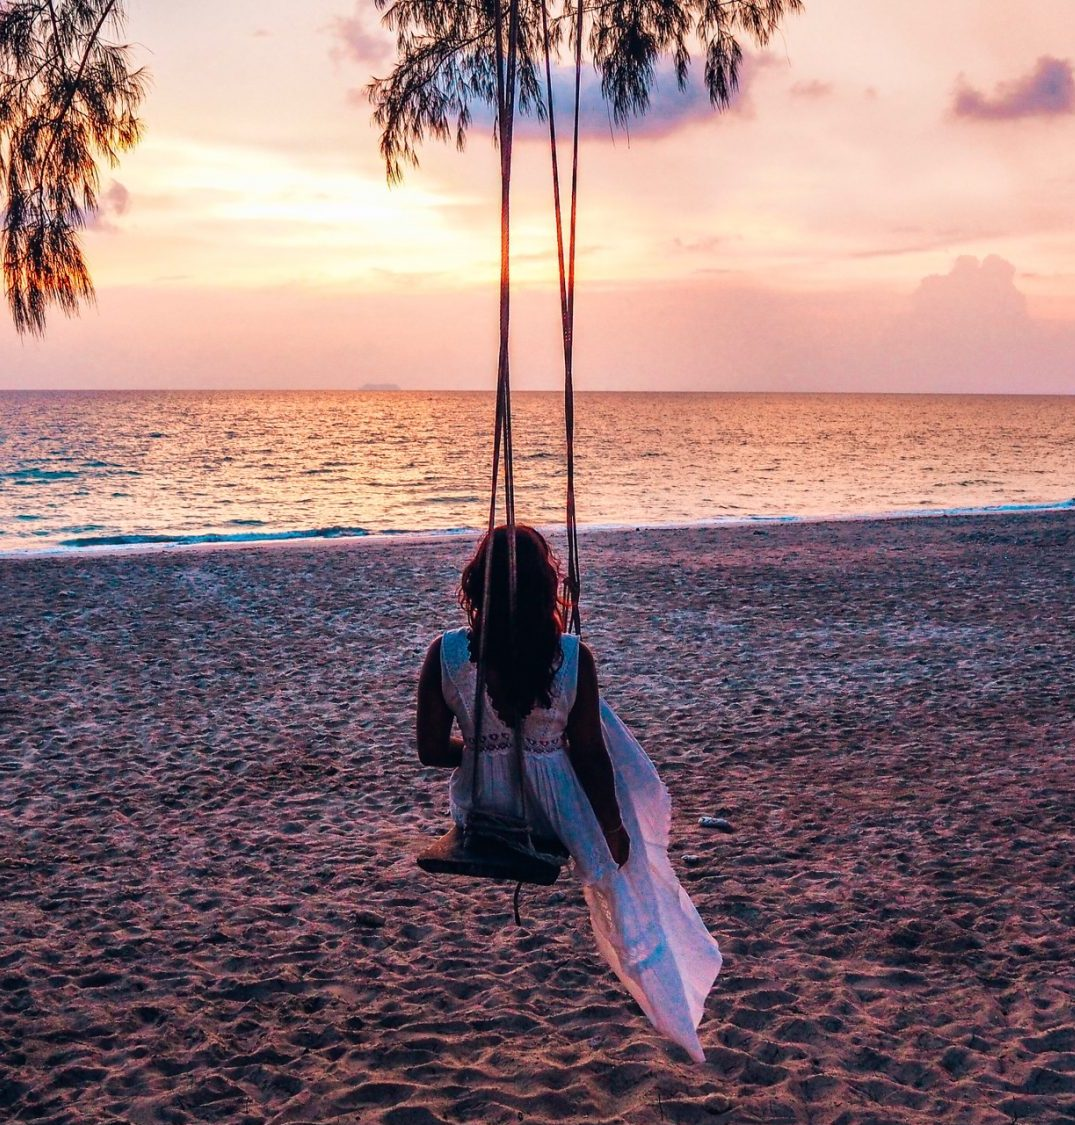 Absolutely Lucy, sunset, recovery from domestic violence trip, Thailand Koh Lanta beach shots 2019